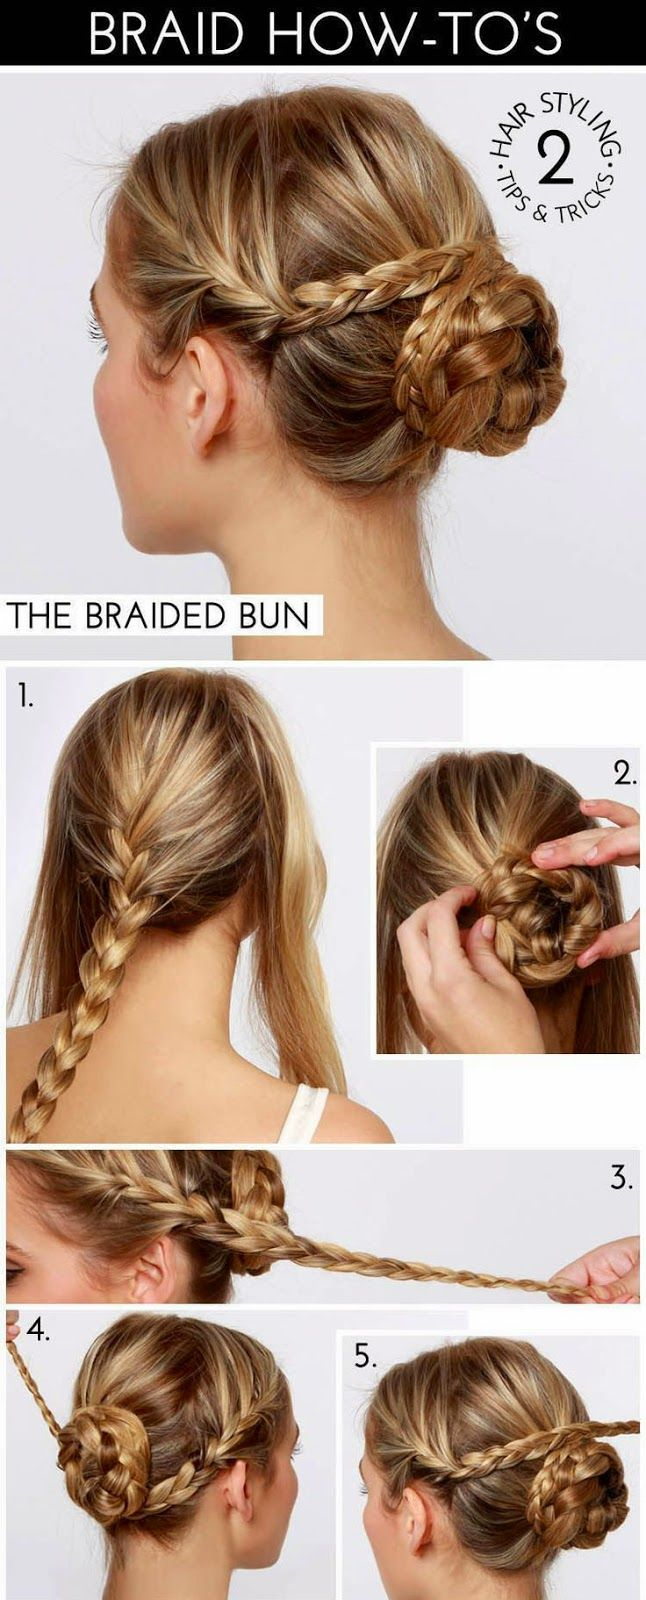 The braid fun continues with this week's braid how-to: the braided bun!